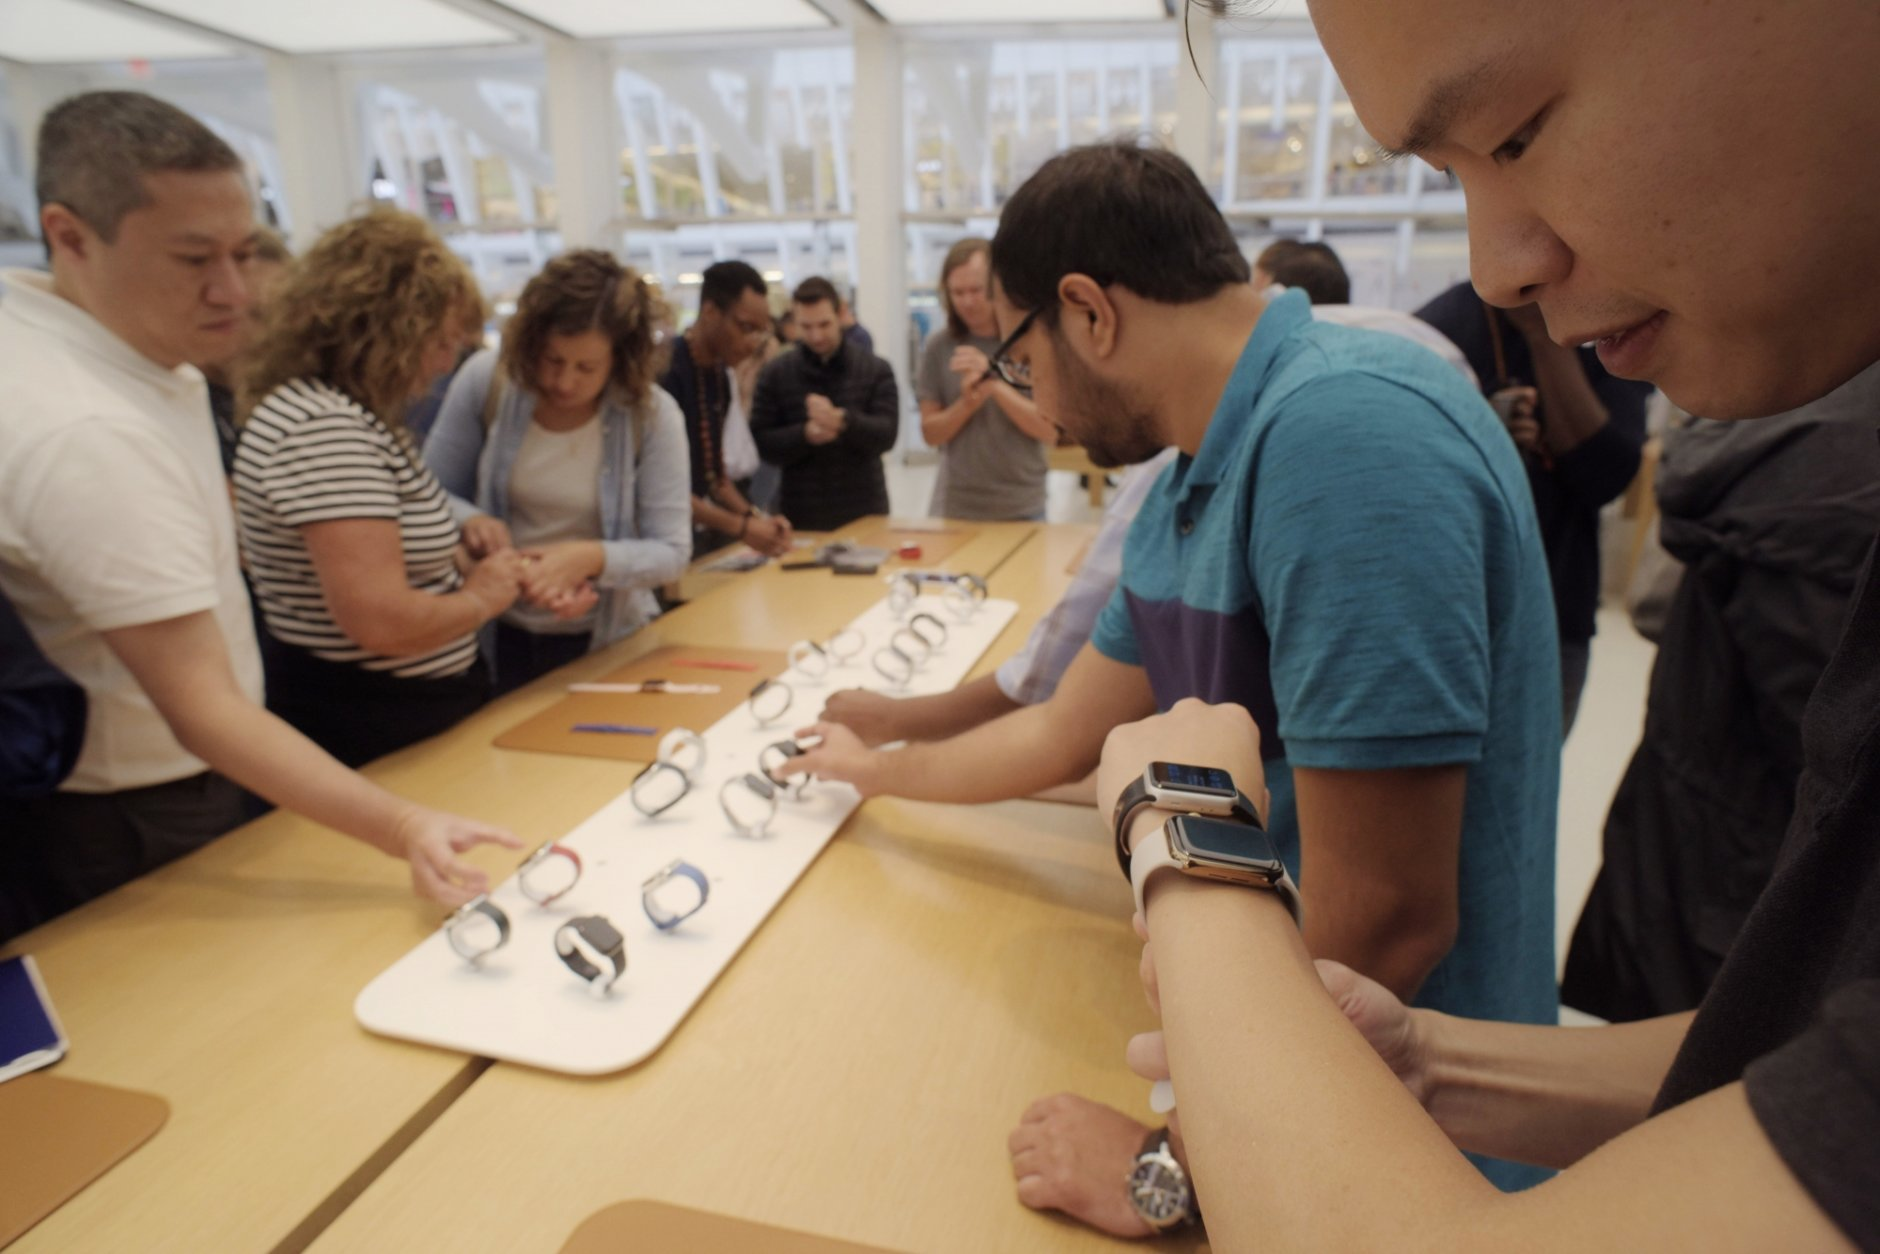 FILE- In this Sept. 21, 2018, file photo customers look at new Apple watches including the Series 4 at an Apple store in New York. The new Apple Watch model, called Series 4, has built-in EKG sensors so you can share detailed heart readings with your doctor without visiting a clinic. Doctors get a PDF file showing the peaks and valleys of your heart rhythm, just as they would with an EKG on paper. (AP Photo/Patrick Sison, File)